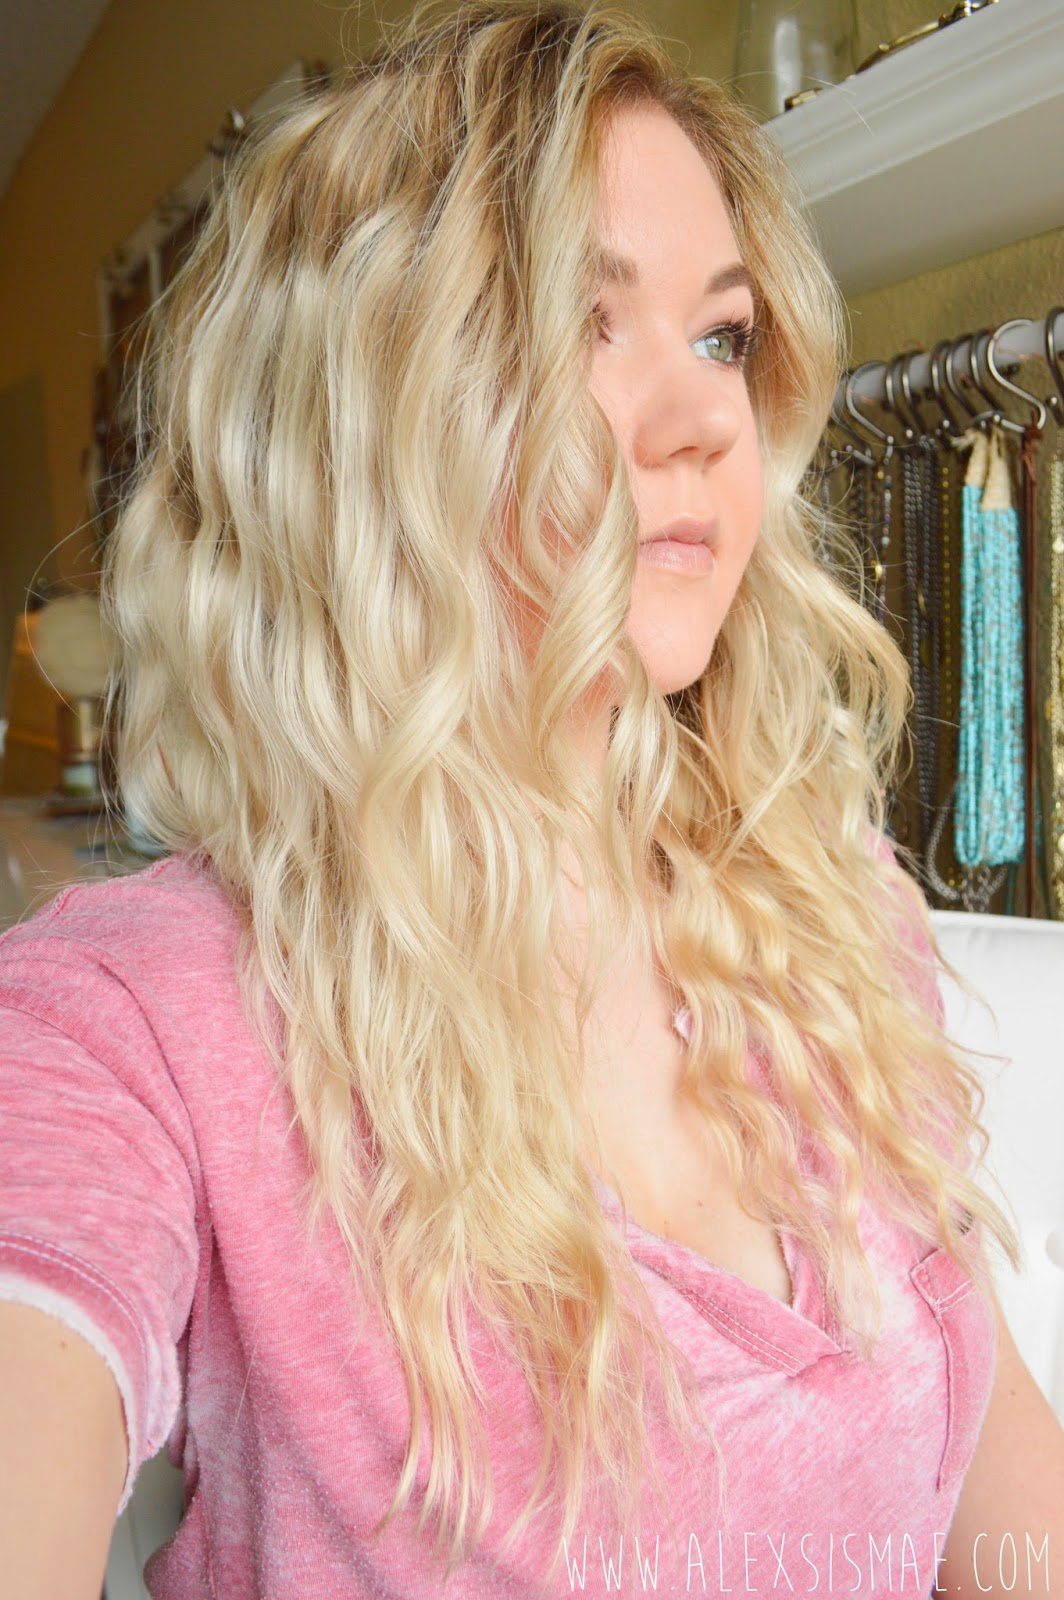 Alexsis mae natural overnight beach waves no heat required